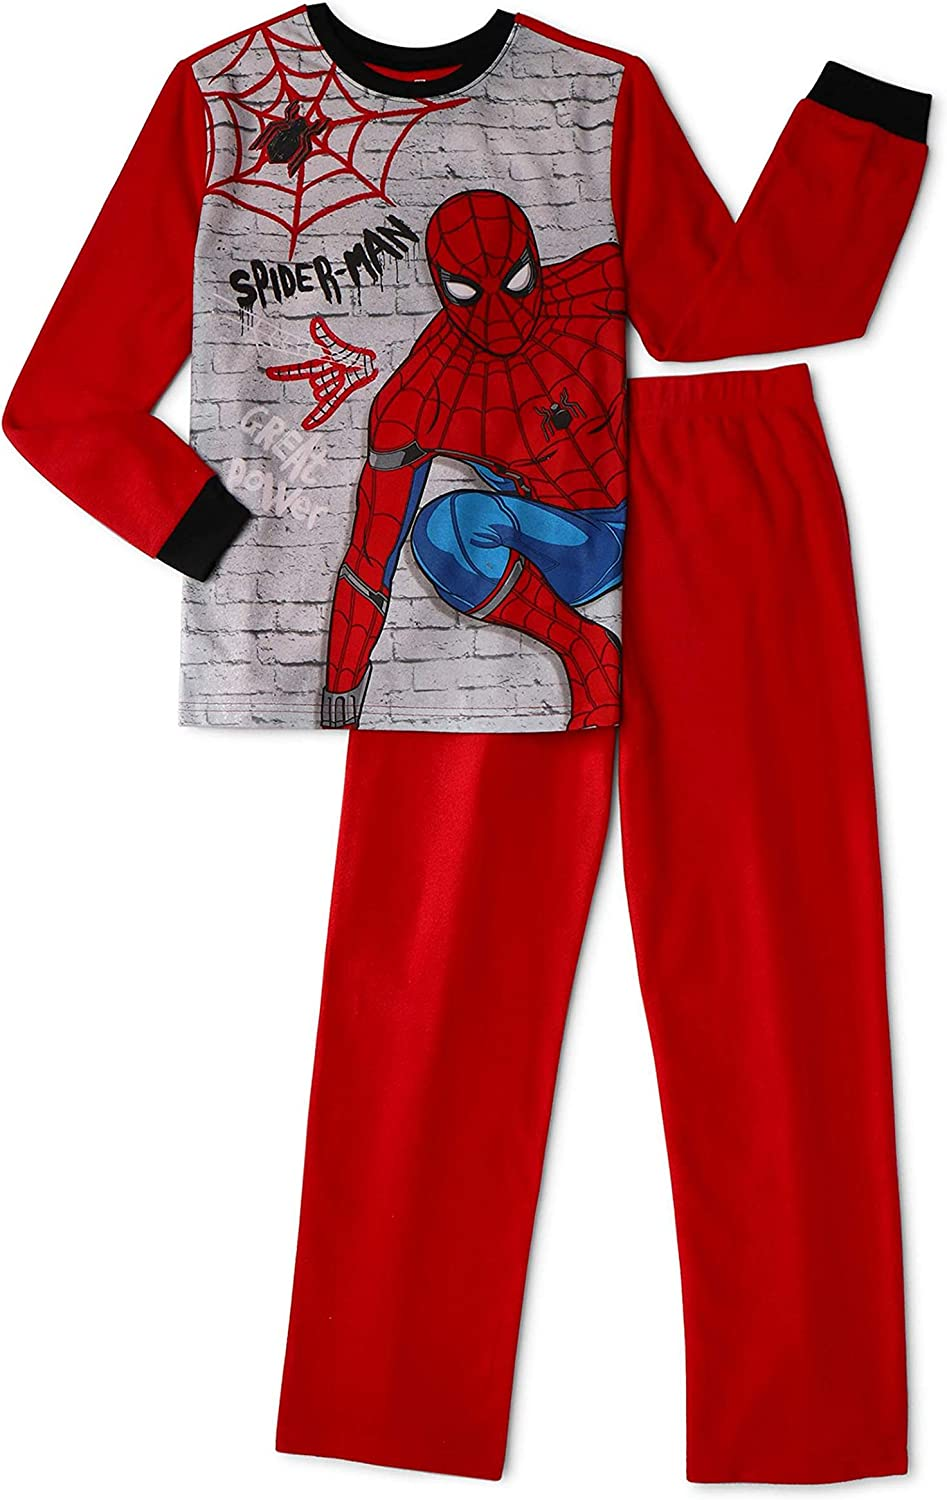 Marvel Little and Big Boys Spiderman 2 Piece Pajama Sleepwear Set 816N2Br5q5mL